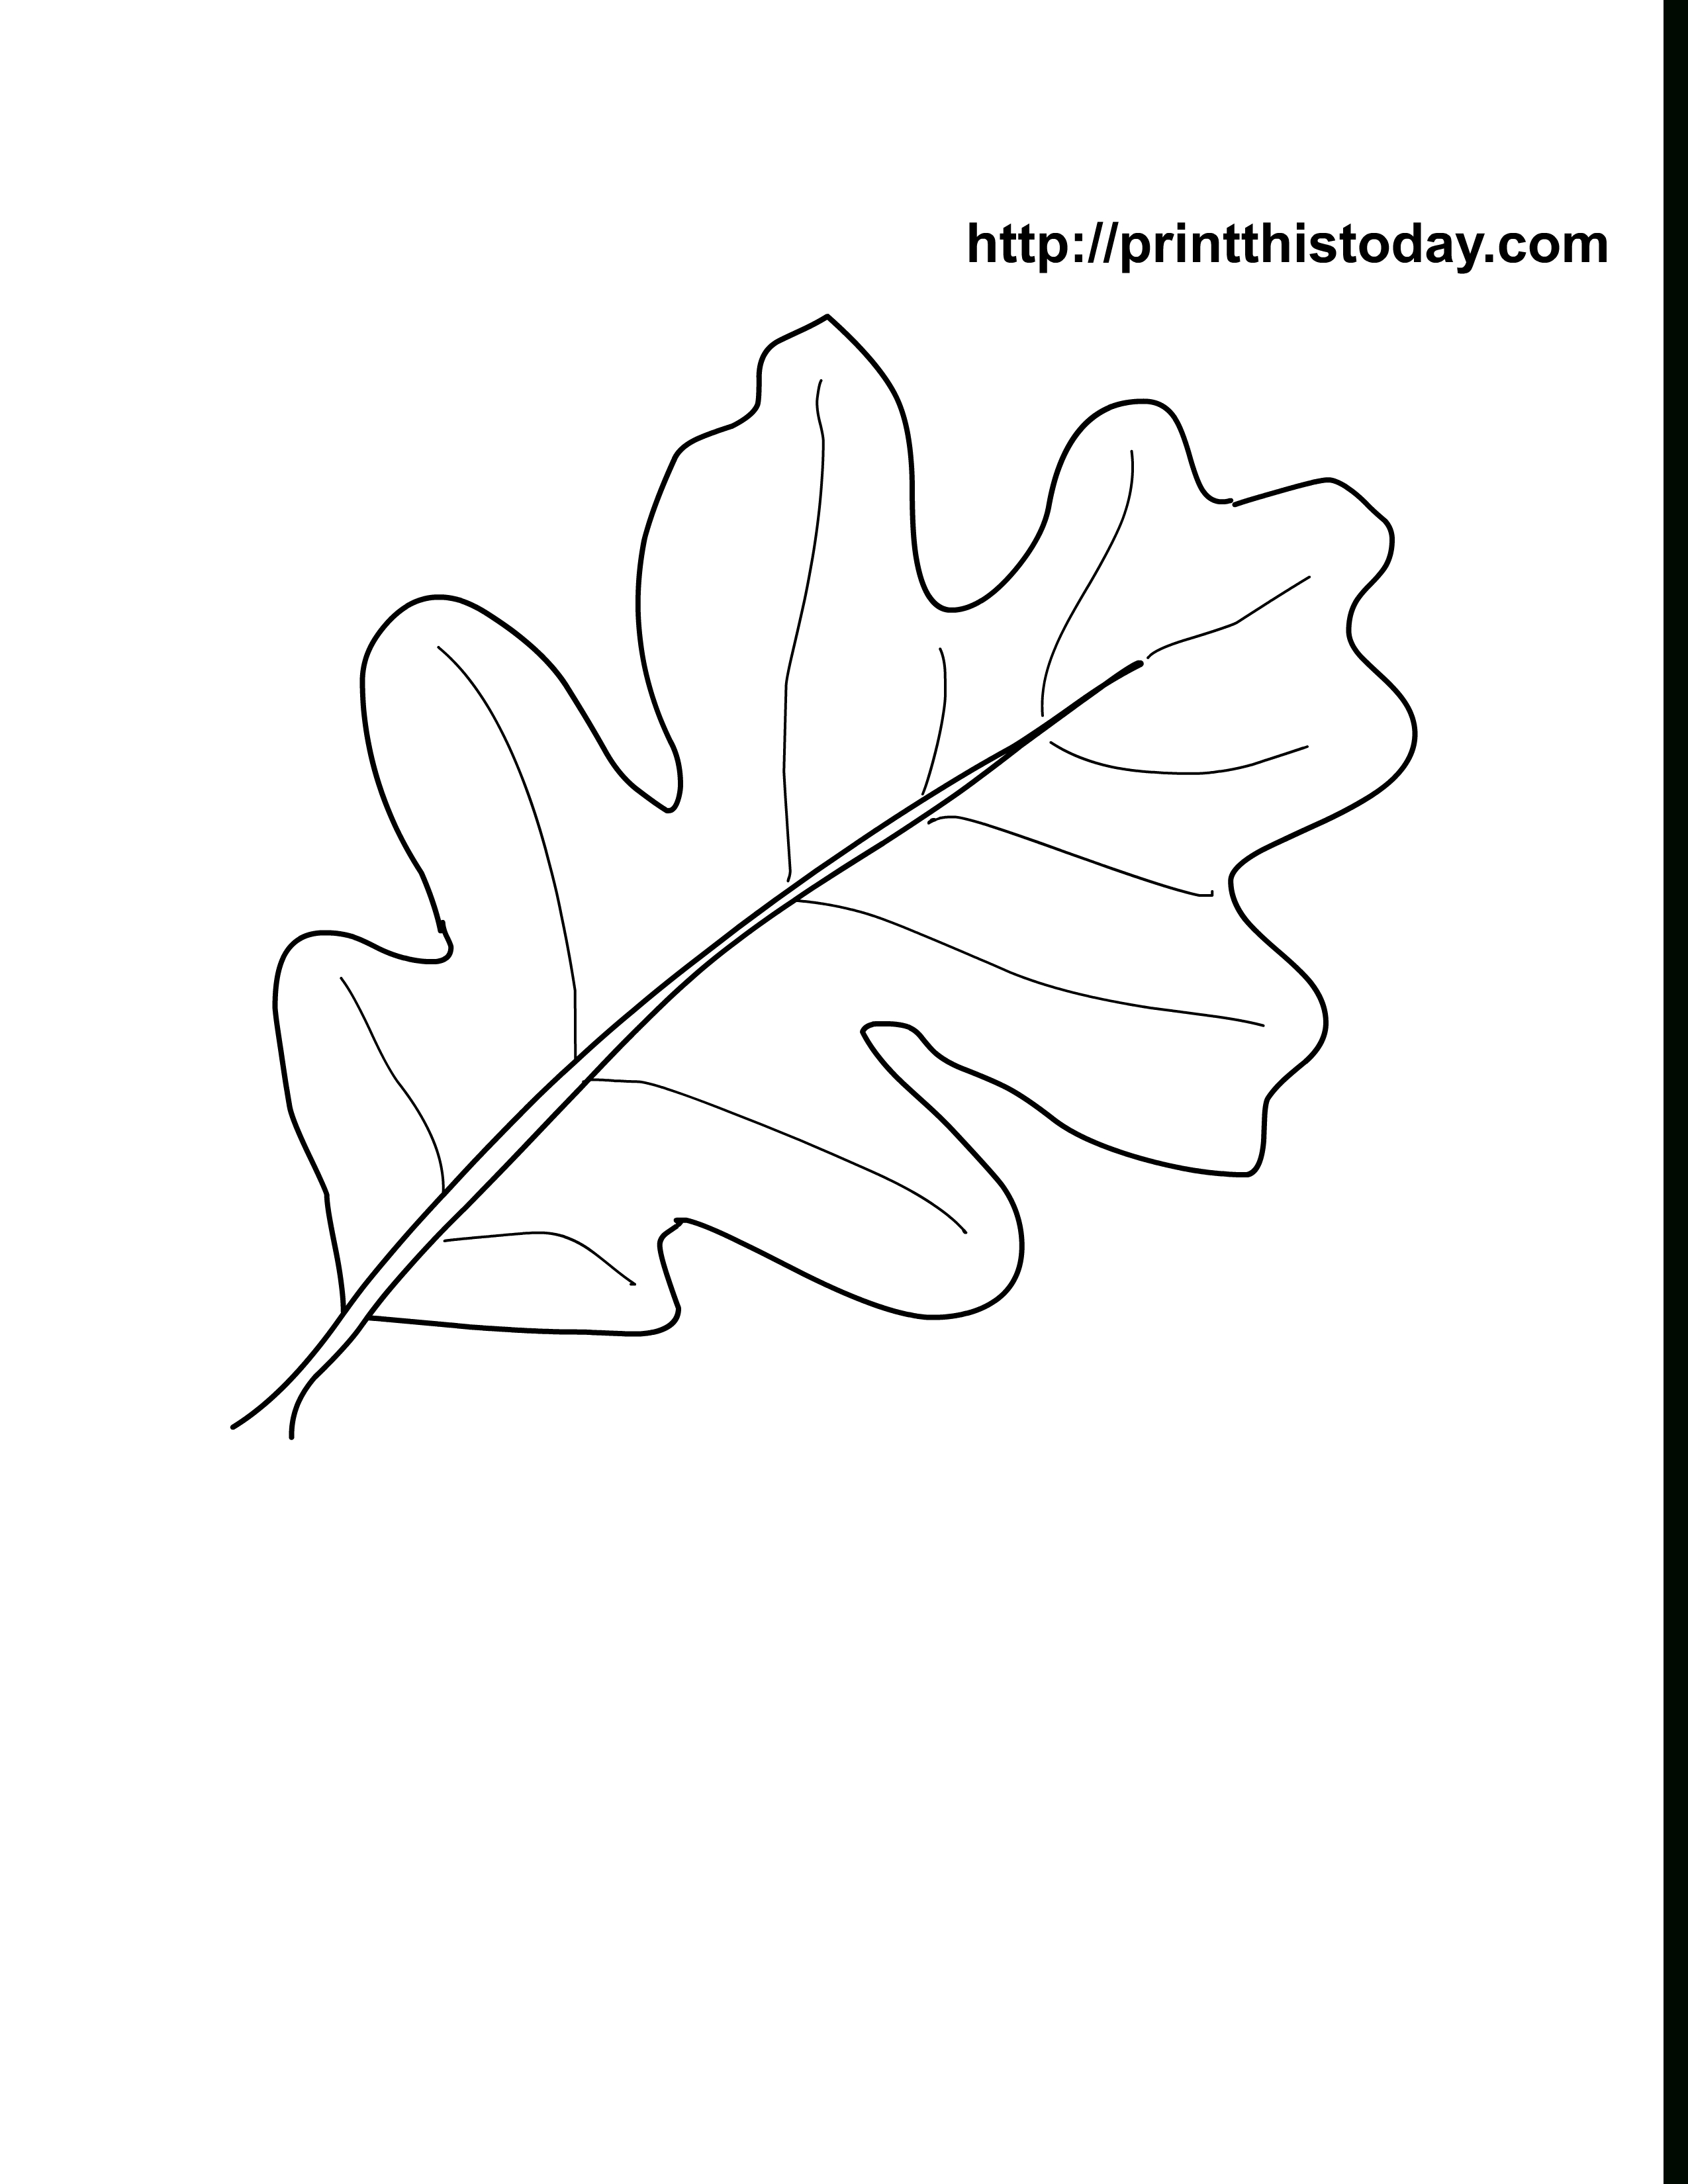 Oak Leaves Coloring Pages Printable | Craft Ideas | Leaf Coloring - Free Printable Leaves